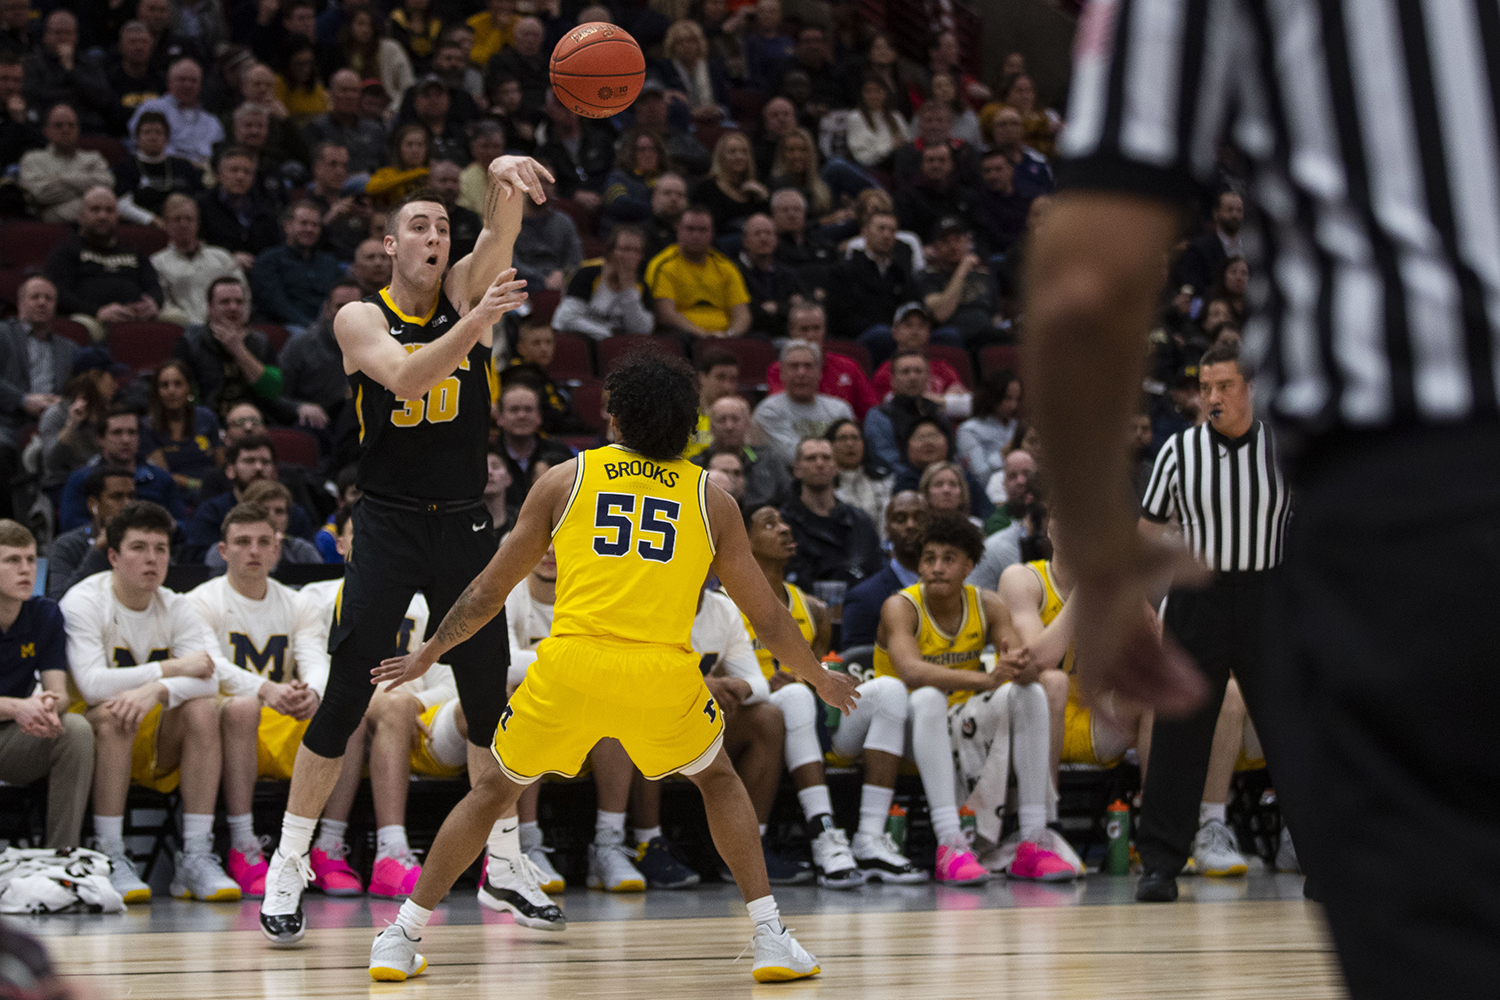 Iowa+guard+Connor+McCaffery+passes+the+ball+over+Michigan+guard+Eli+Brooks+during+the+Iowa%2FMichigan+Big+Ten+Tournament+men%27s+basketball+game+in+the+United+Center+in+Chicago+on+Friday%2C+March+15%2C+2019.+The+Wolverines+defeated+the+Hawkeyes%2C+74-53.+